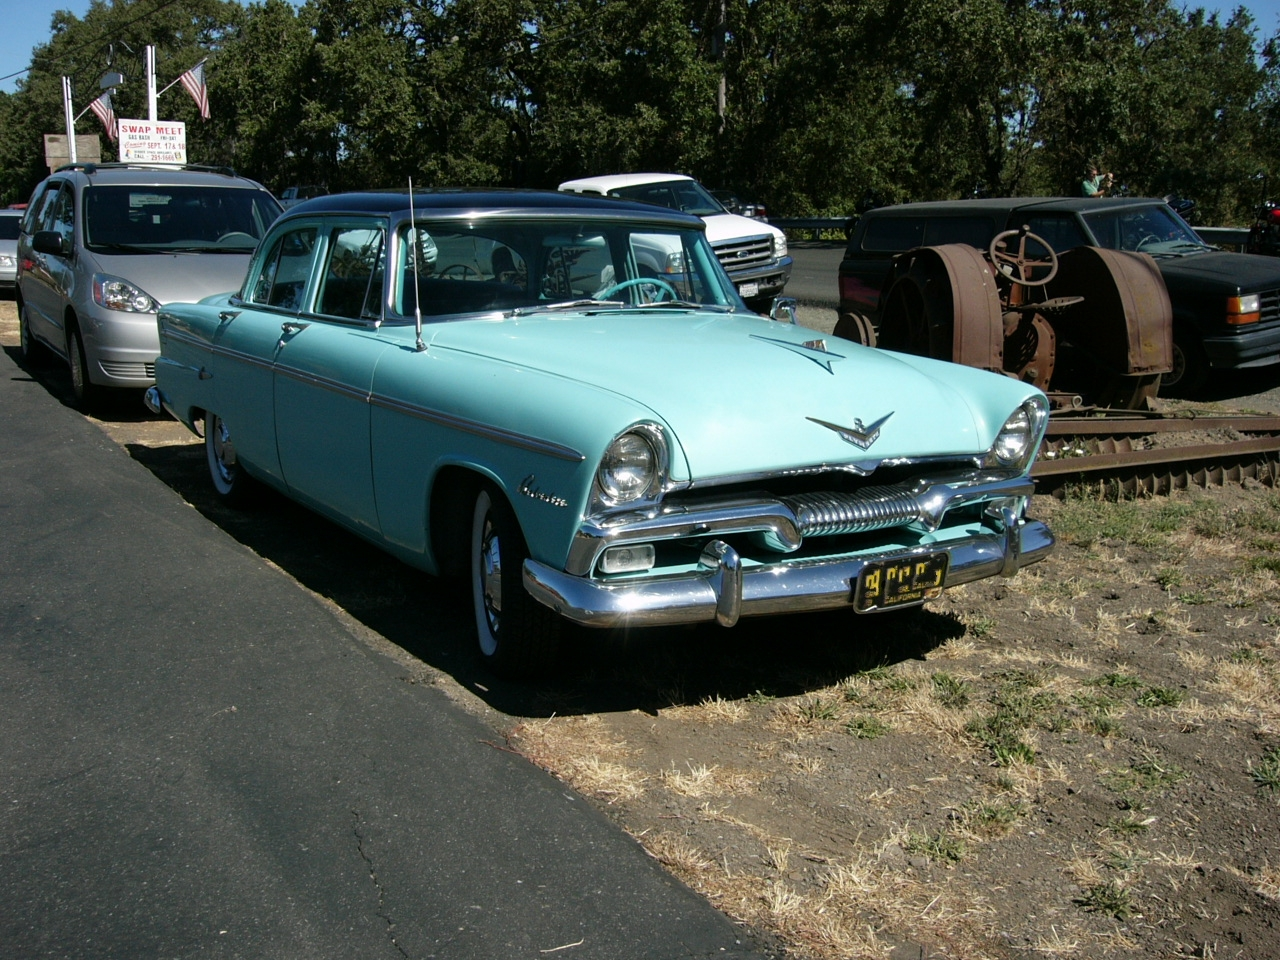 1955 plymouth belvedere 4 door by roadtripdog on deviantart for 1955 plymouth belvedere 4 door sedan